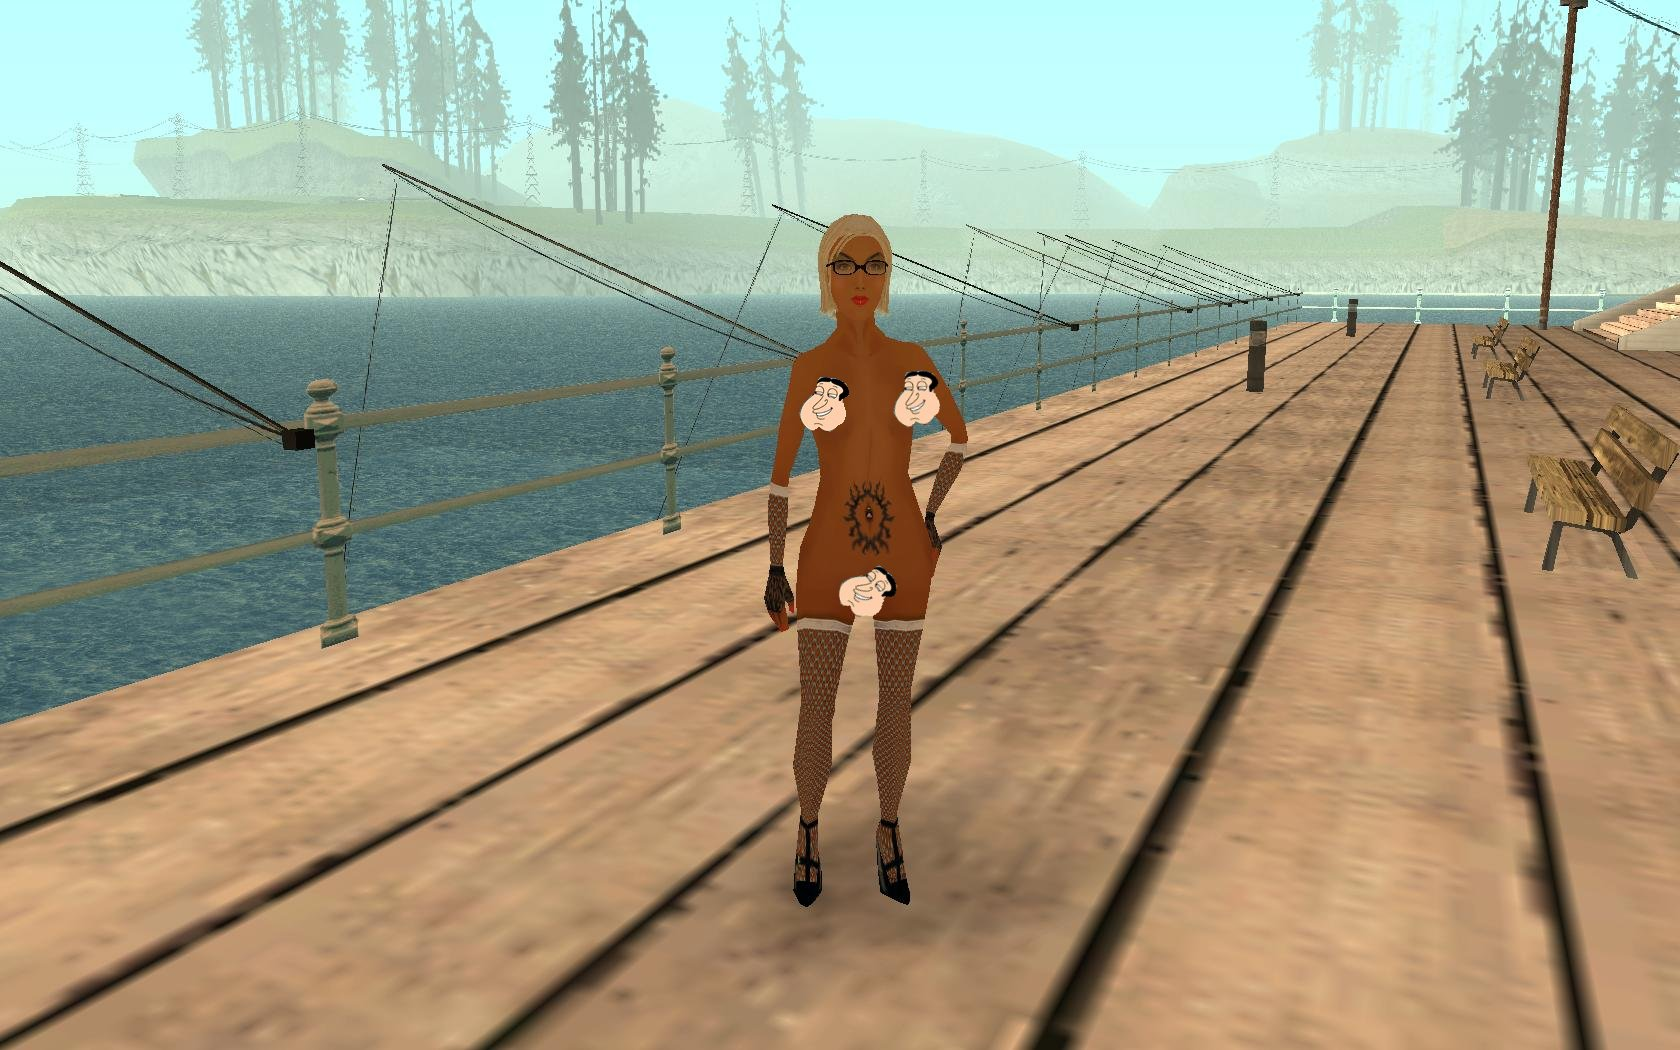 Gta san andreas nude girl skin erotic pictures